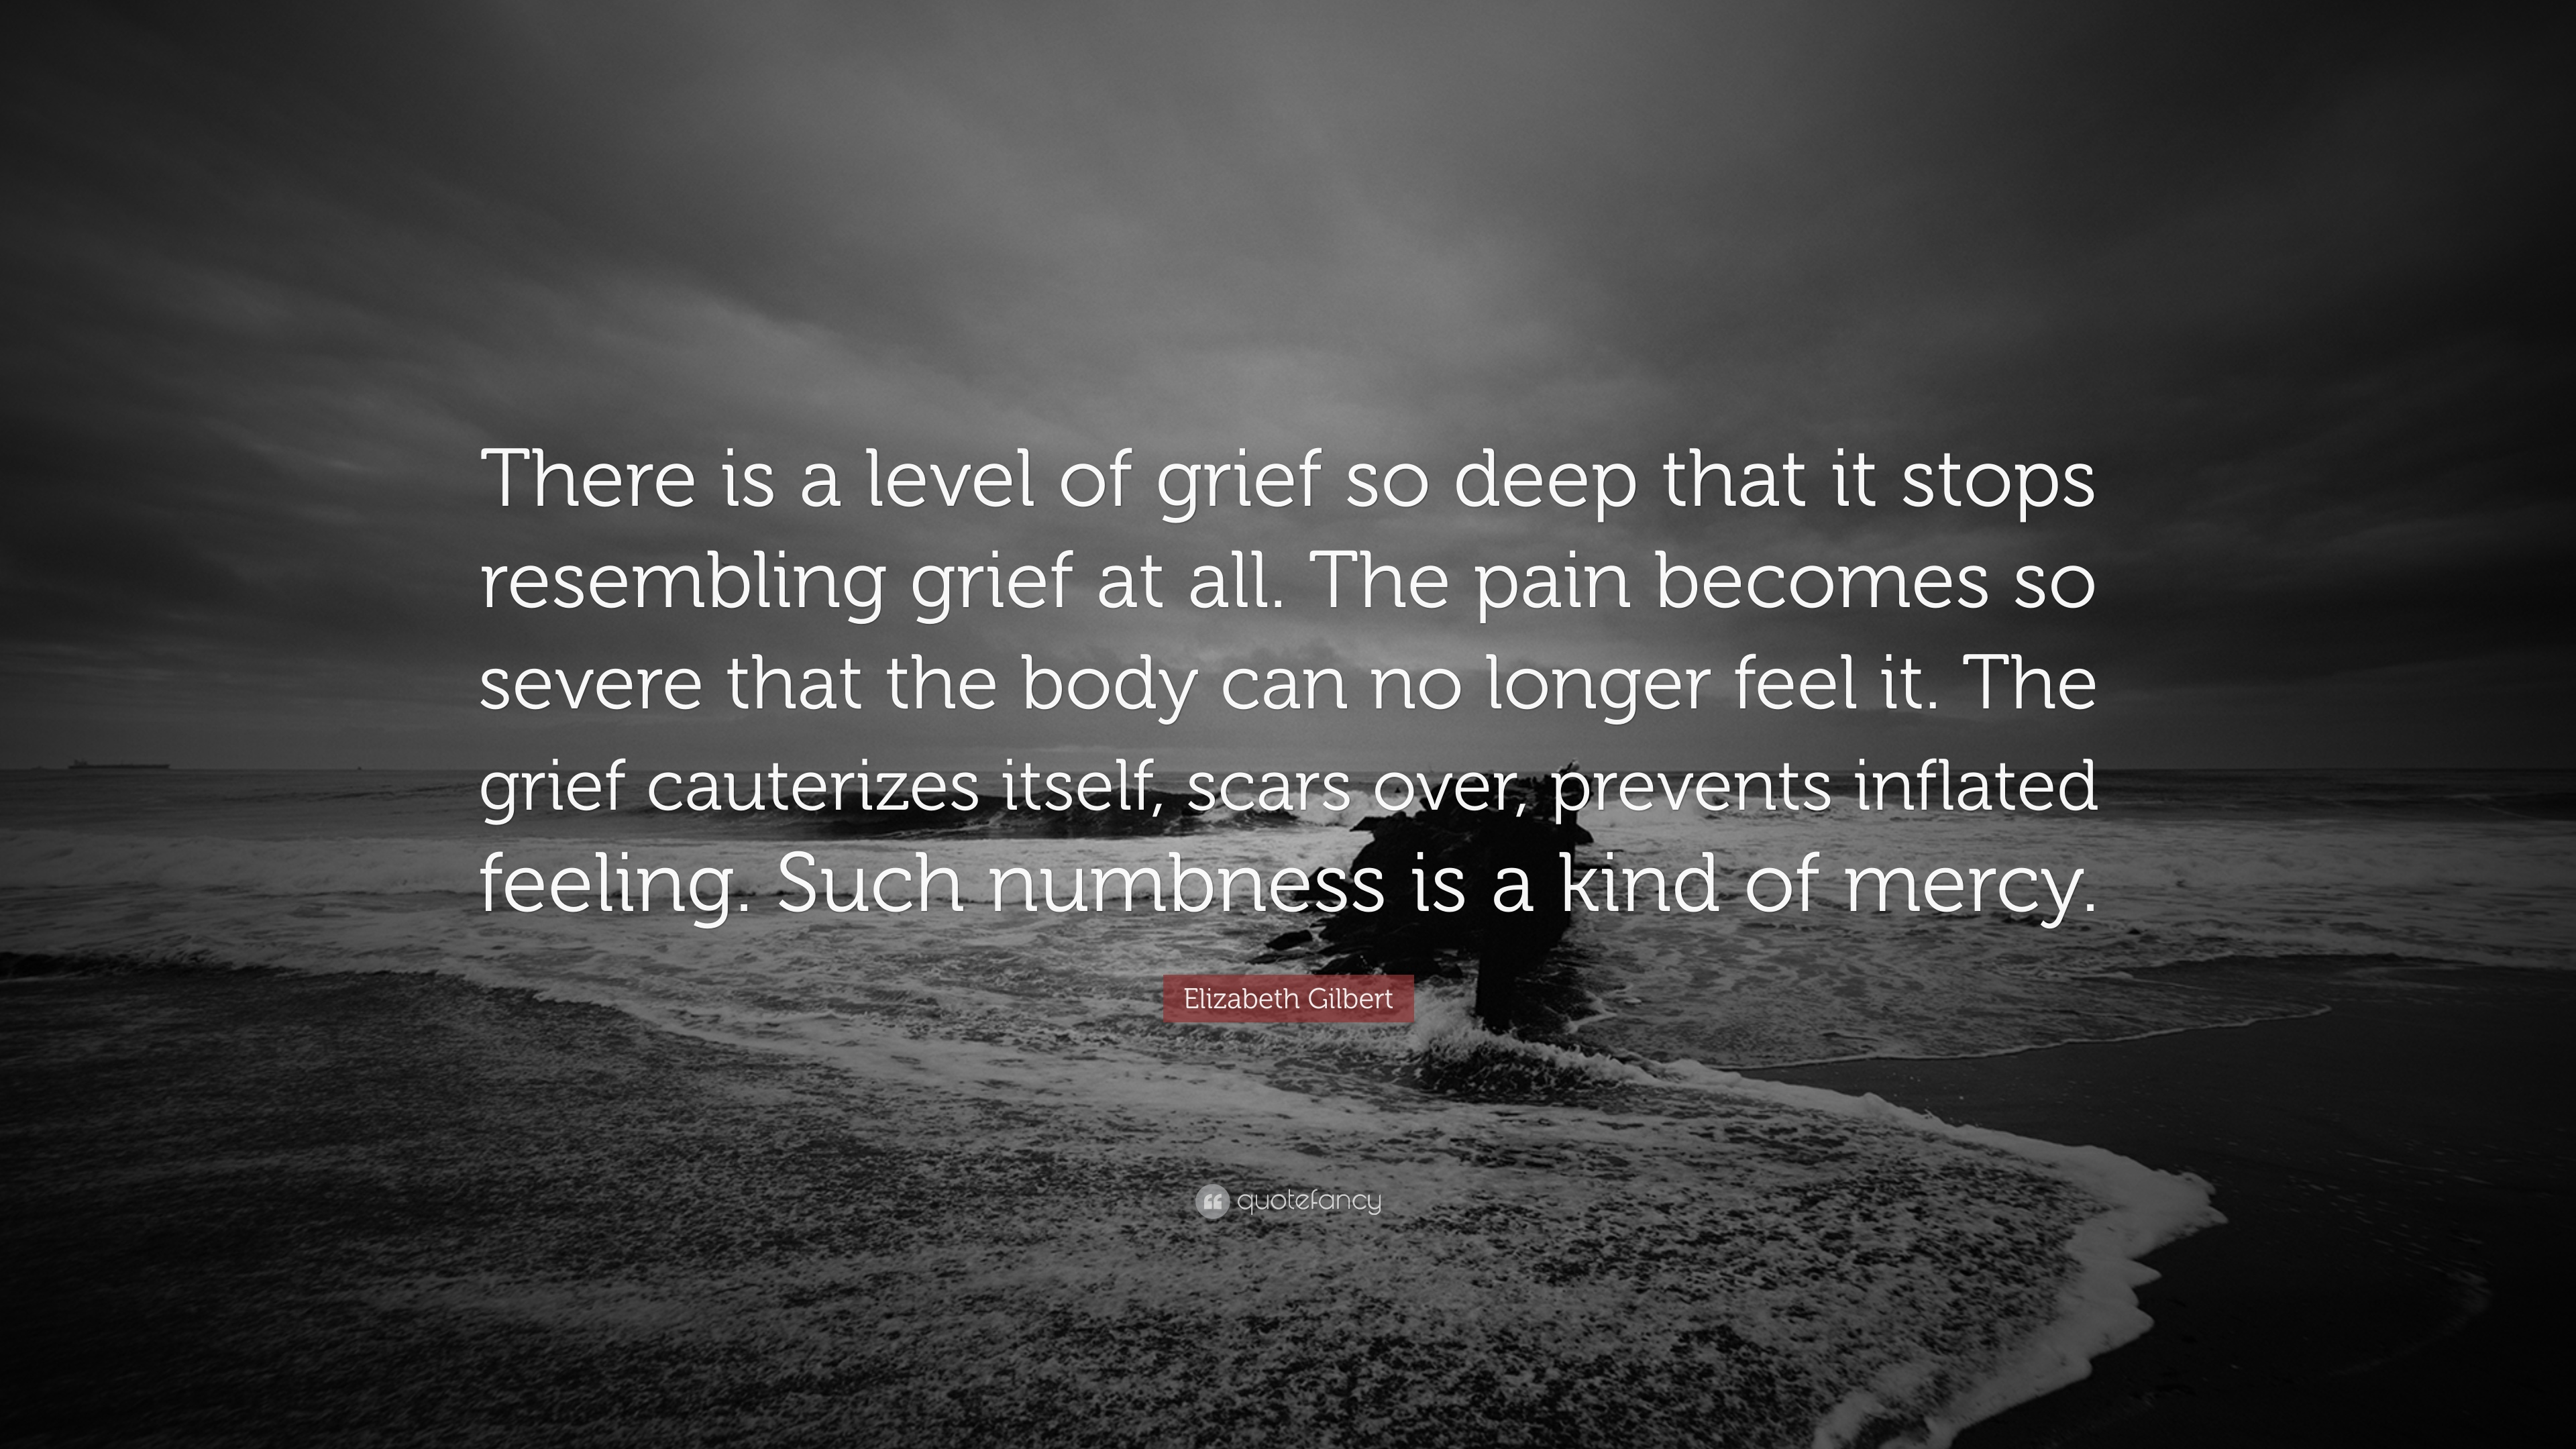 Grieving Quotes | Elizabeth Gilbert Quote There Is A Level Of Grief So Deep That It